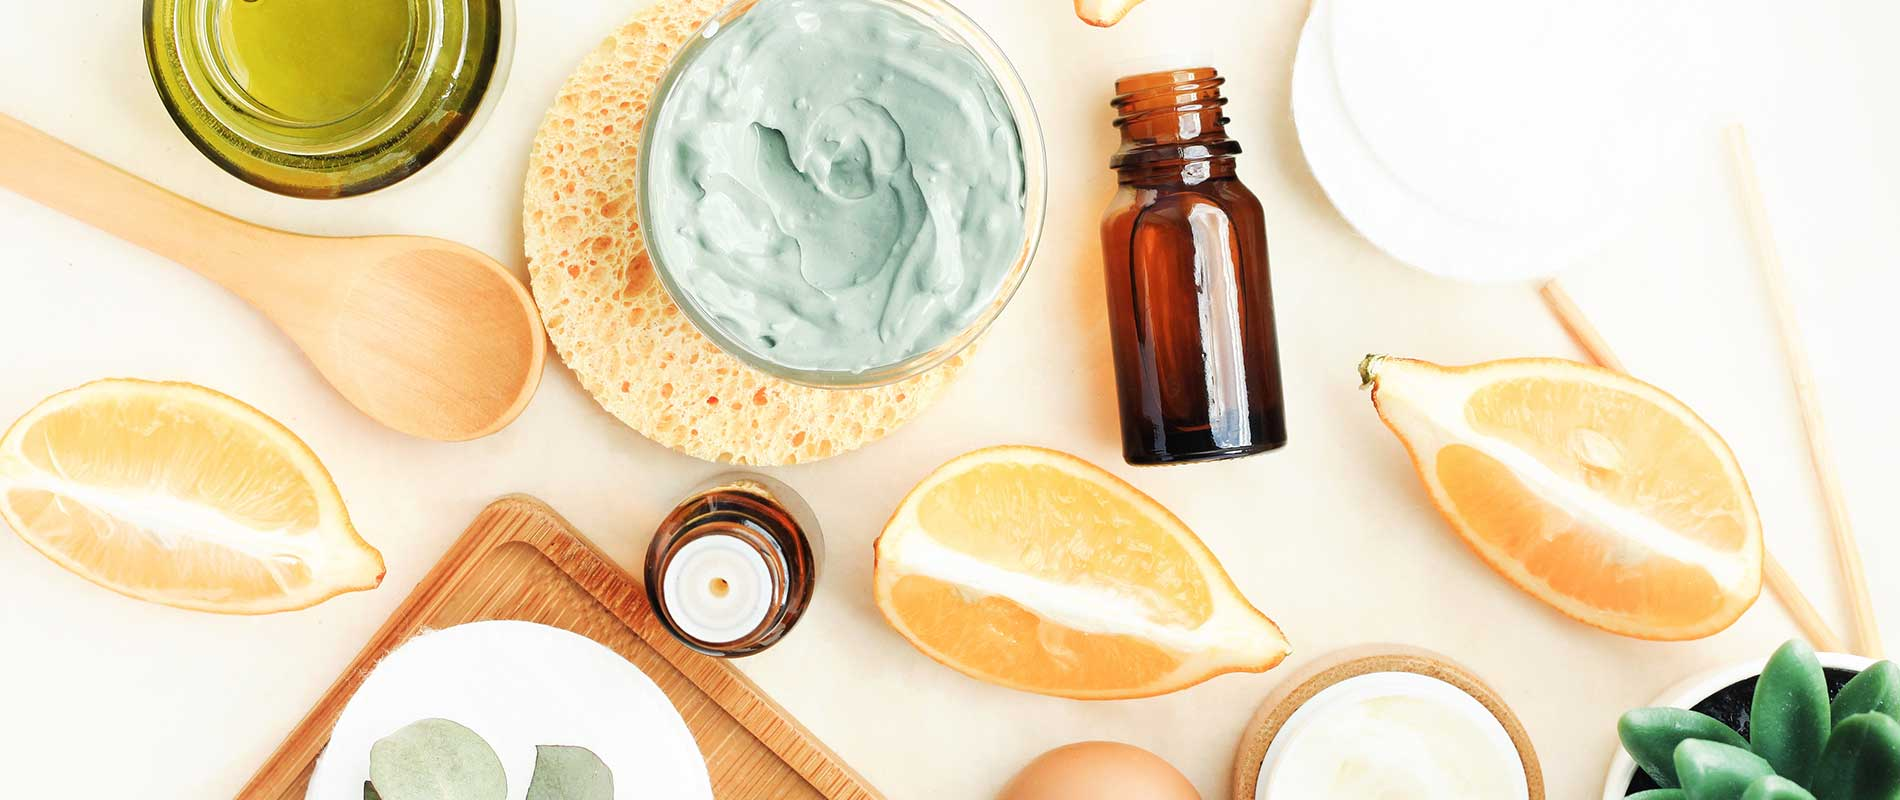 How To Make Your Skincare More Eco-Friendly